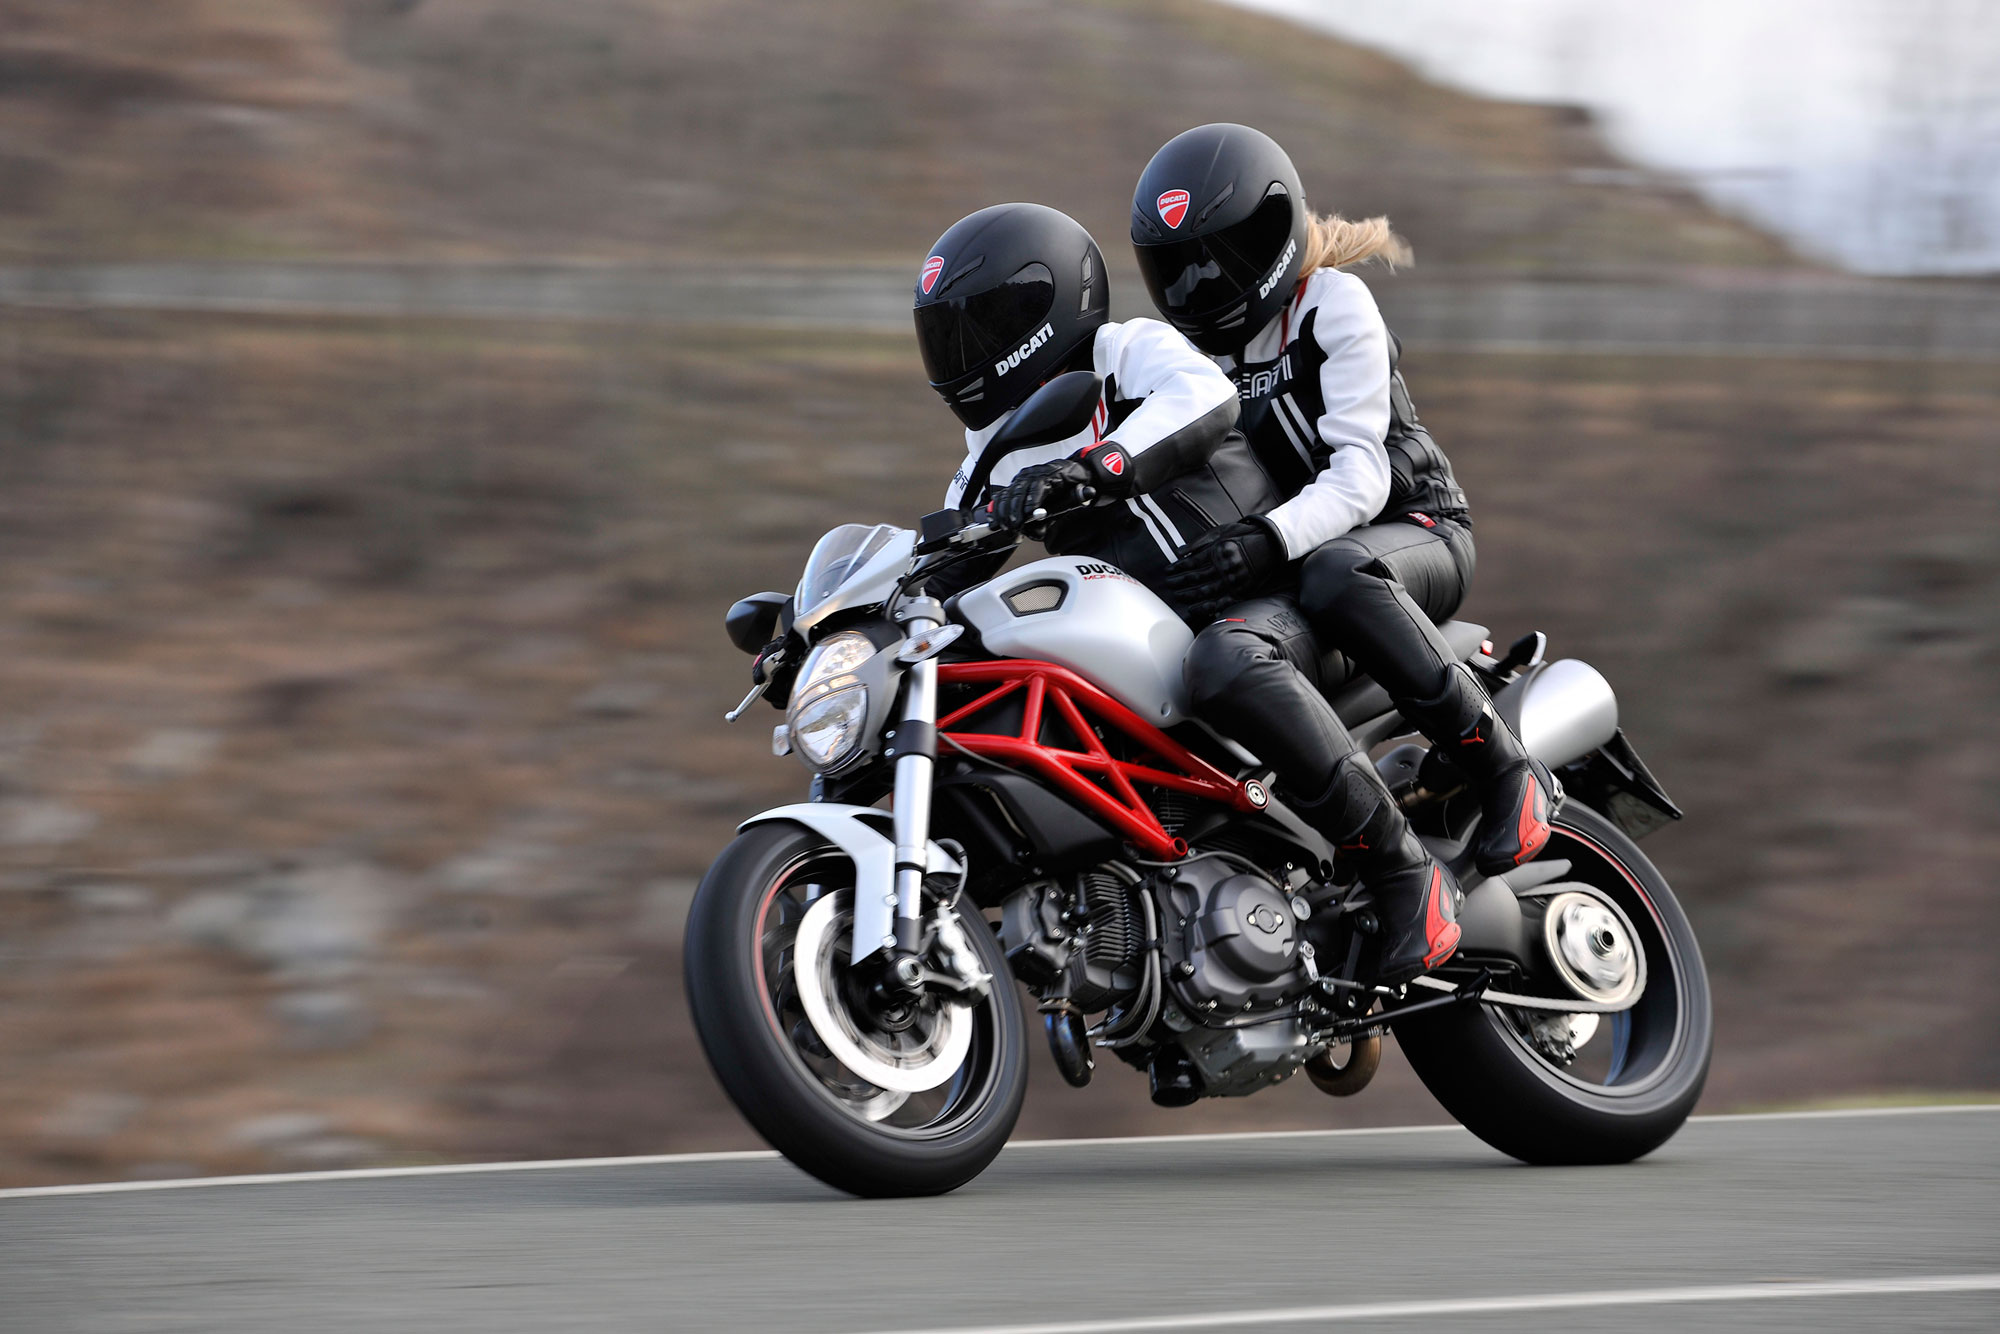 Ducati Monster 796 Corse Stripe 2015 images #146218